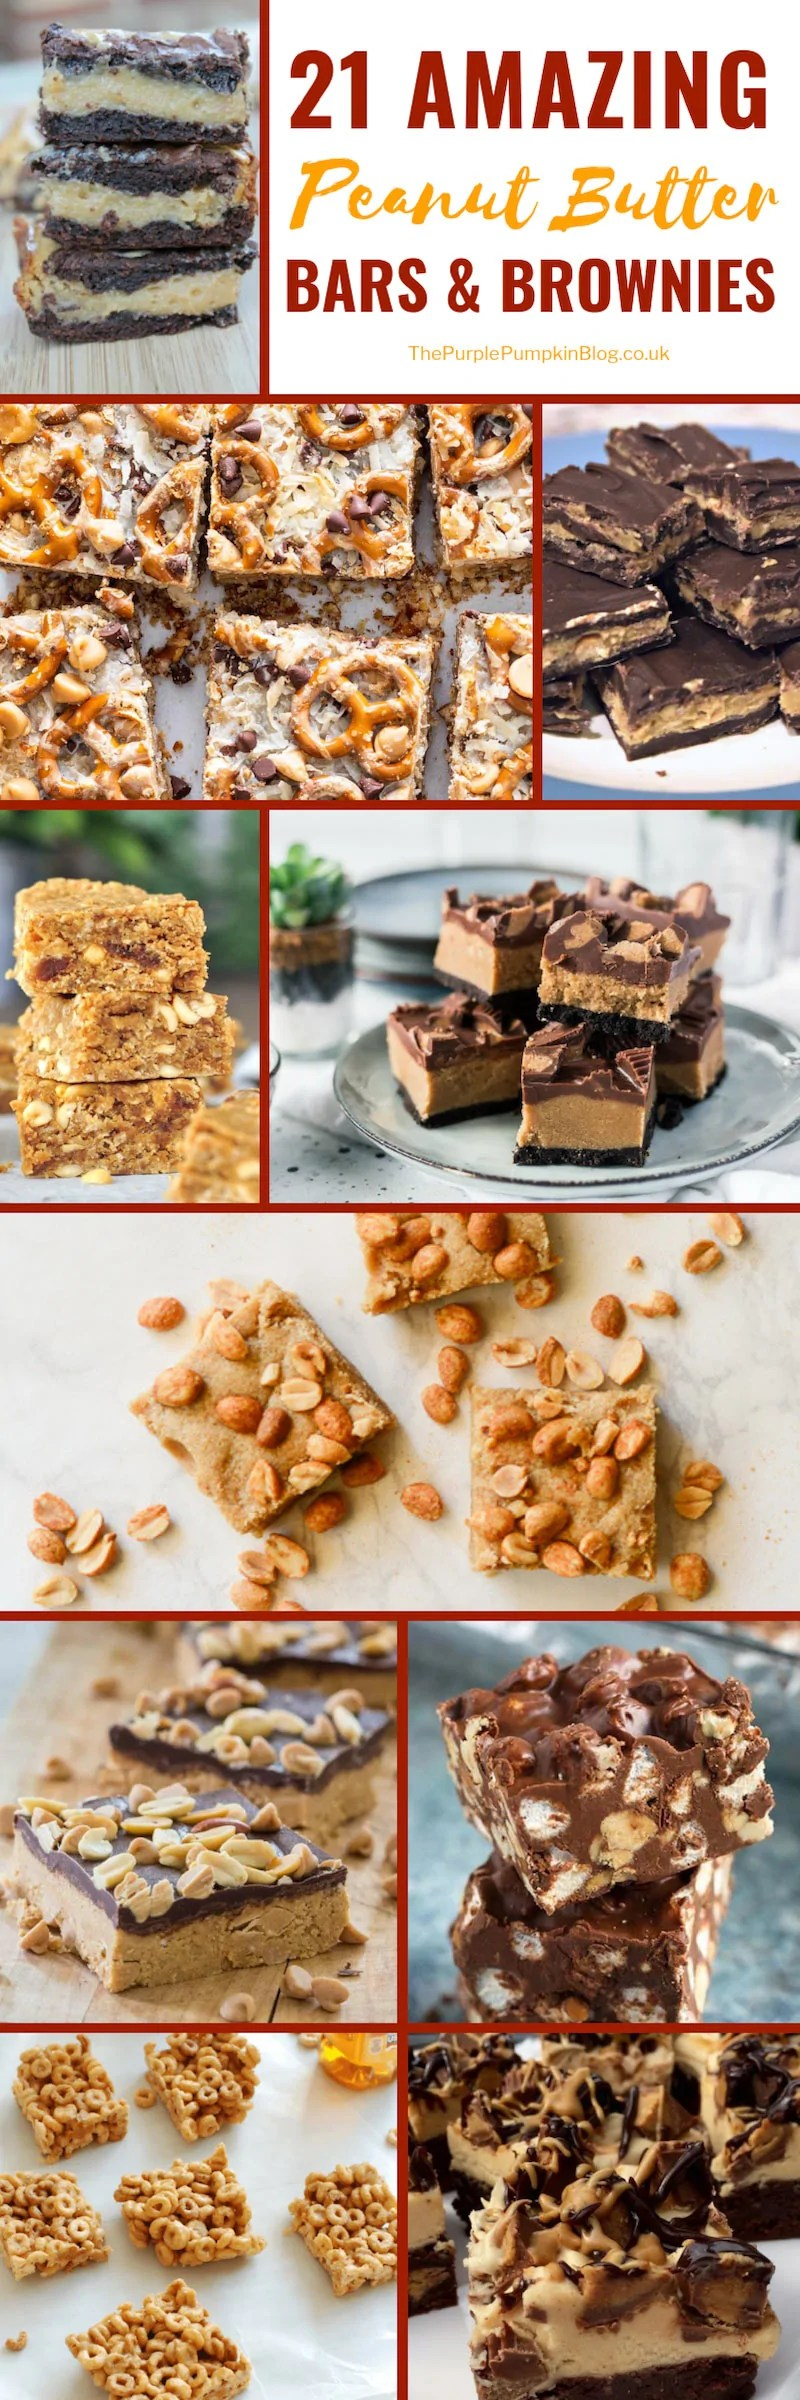 21 Peanut Butter Bars & Brownie Recipes! If you love a chocolate/peanut butter combo, then you're going to love these recipes!  This roundup of peanut butter bars and brownies include: Low Carb; Keto; Gluten-Free; and Vegan recipes. There is an amazing variety of recipes too, with delicious flavourings and ingredients including bananas, coconut, butterscotch, cereal, and pretzels! #PeanutButterBars #Brownies #PeanutButterRecipes